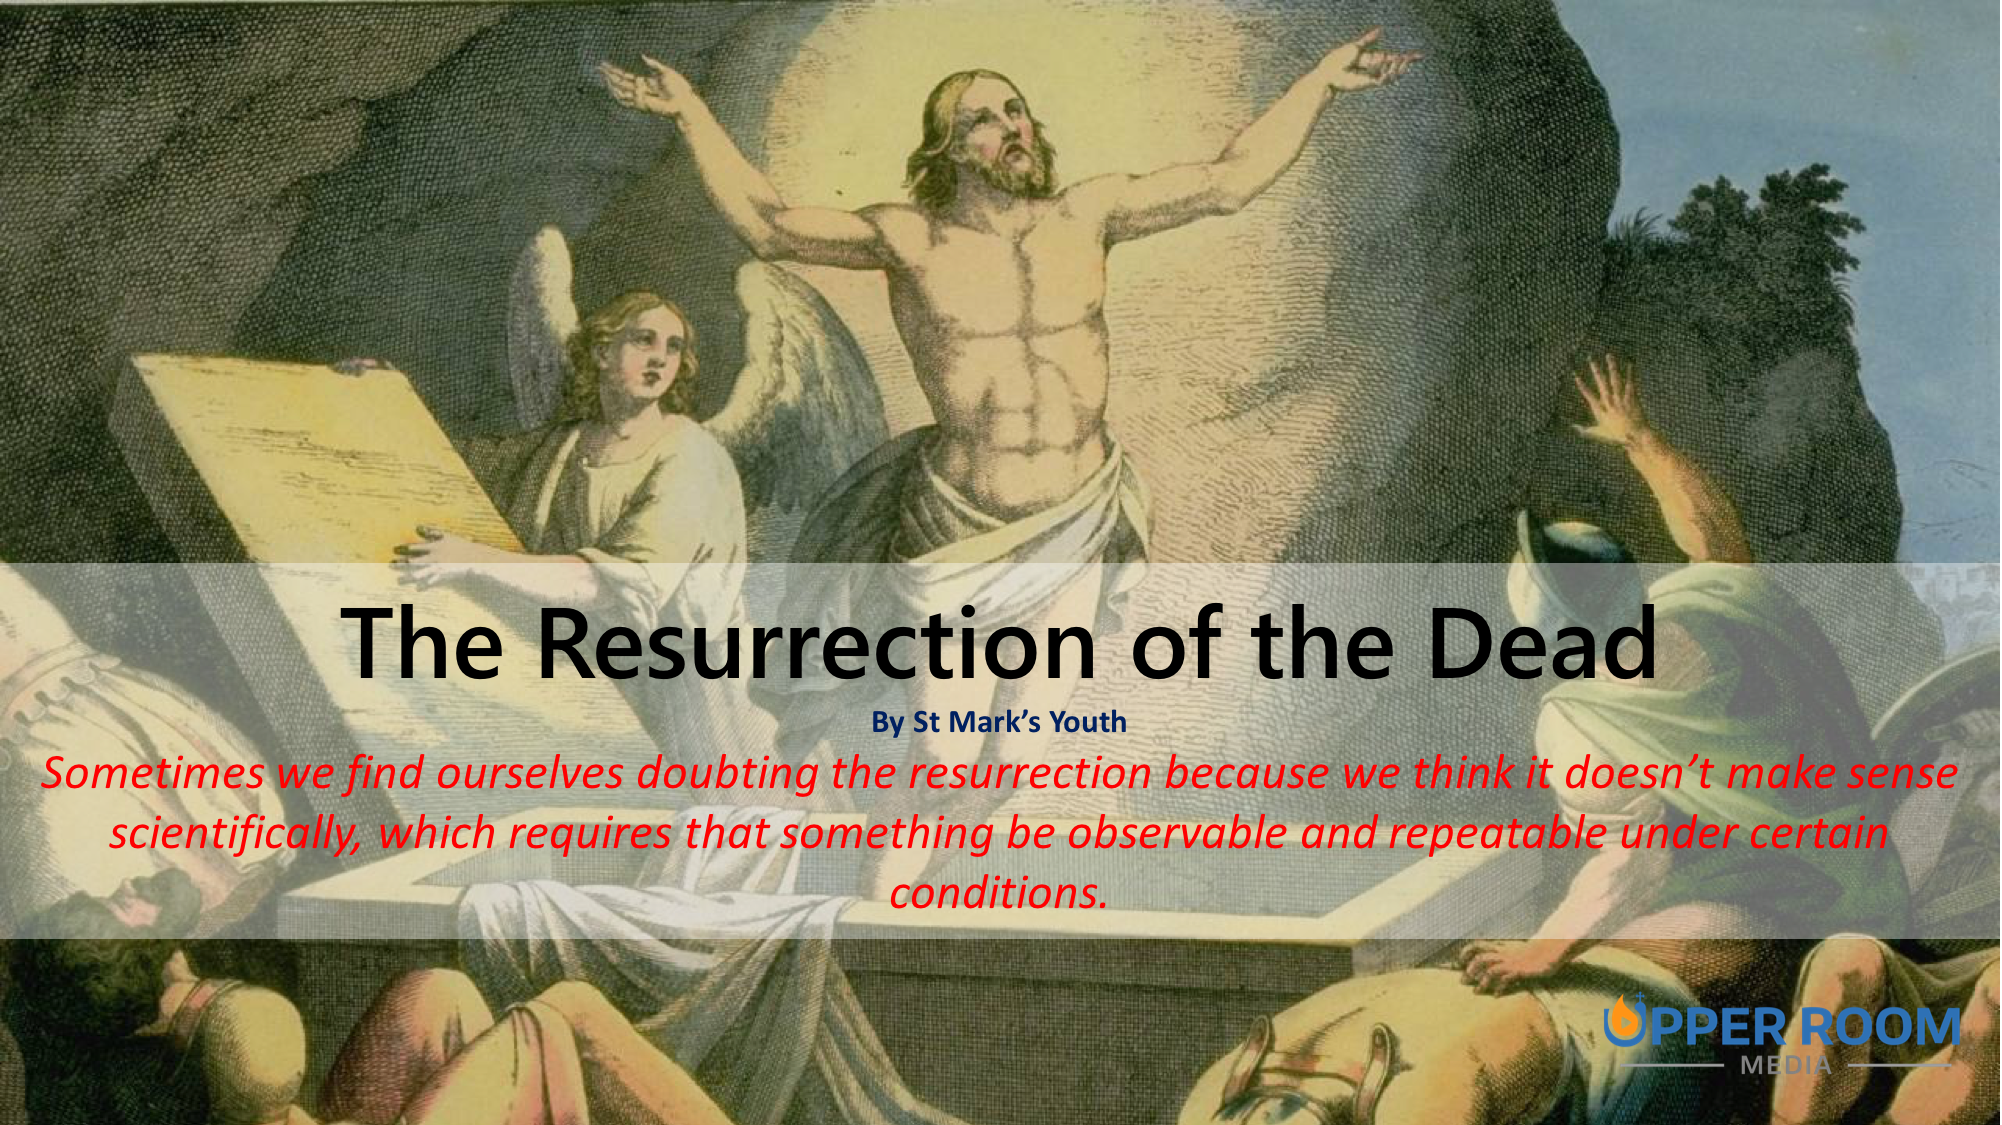 the ressurrection of the dead